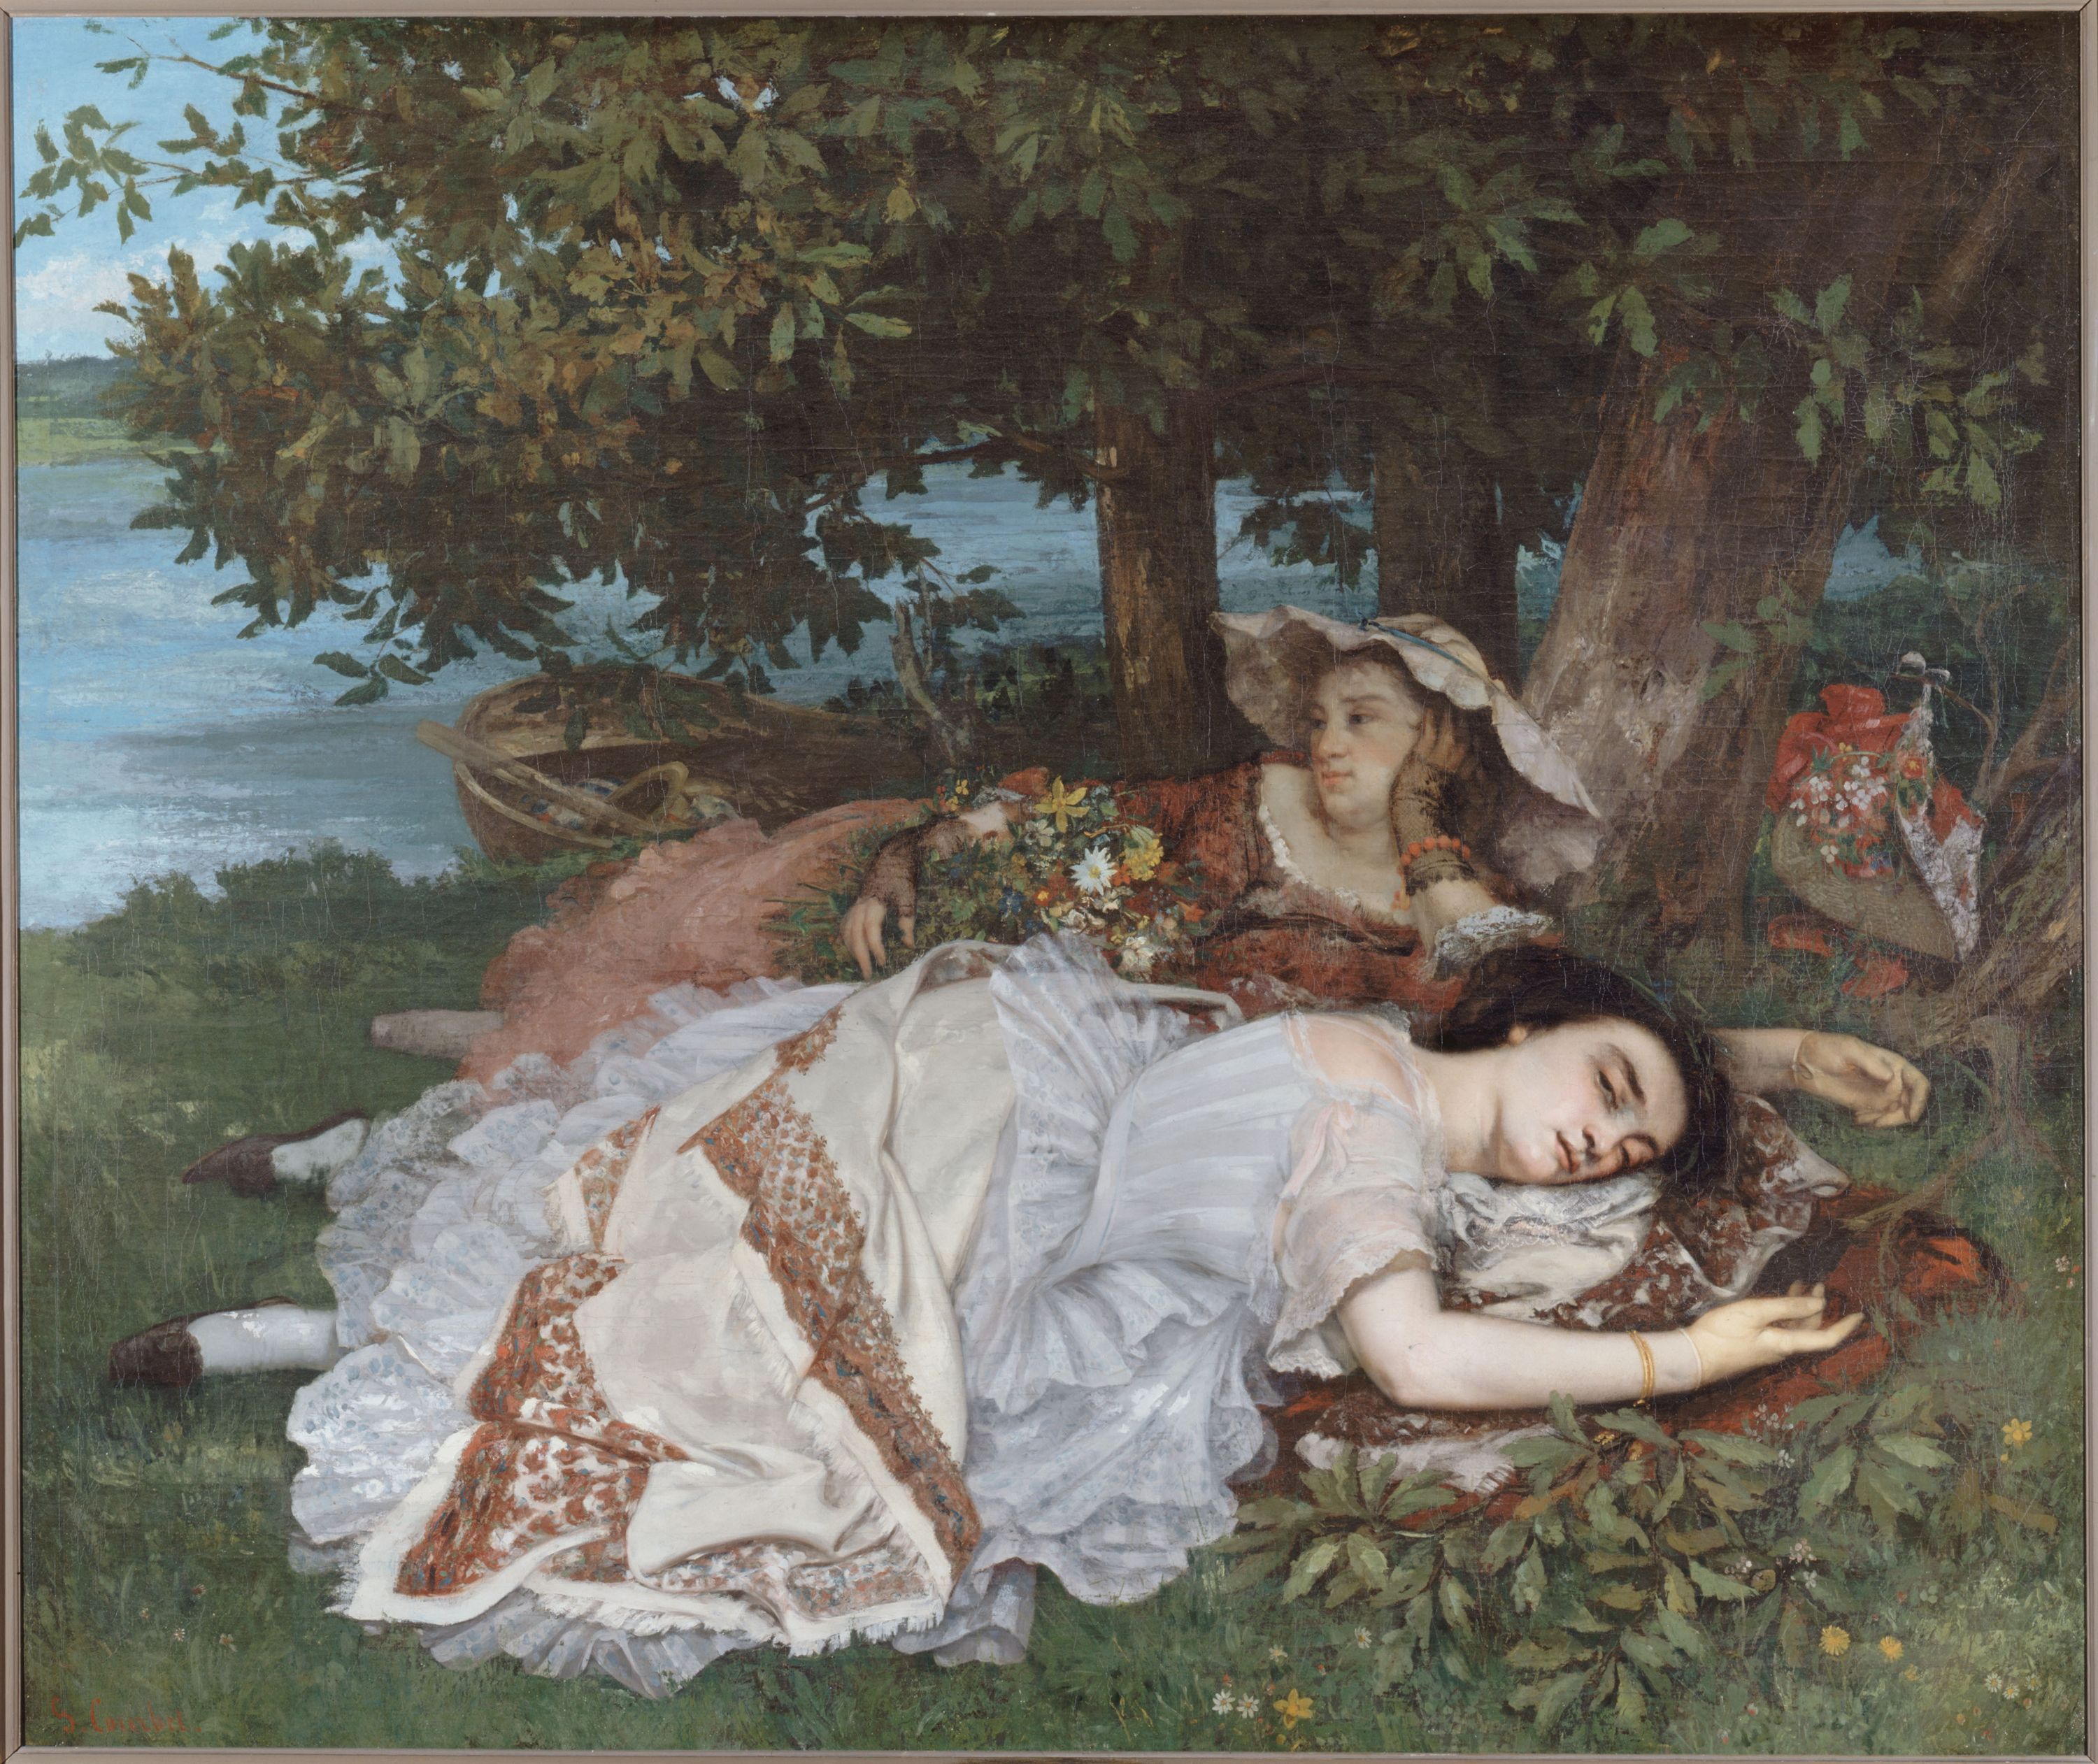 Gustave Courbet - Young Ladies on the Banks of the Seine